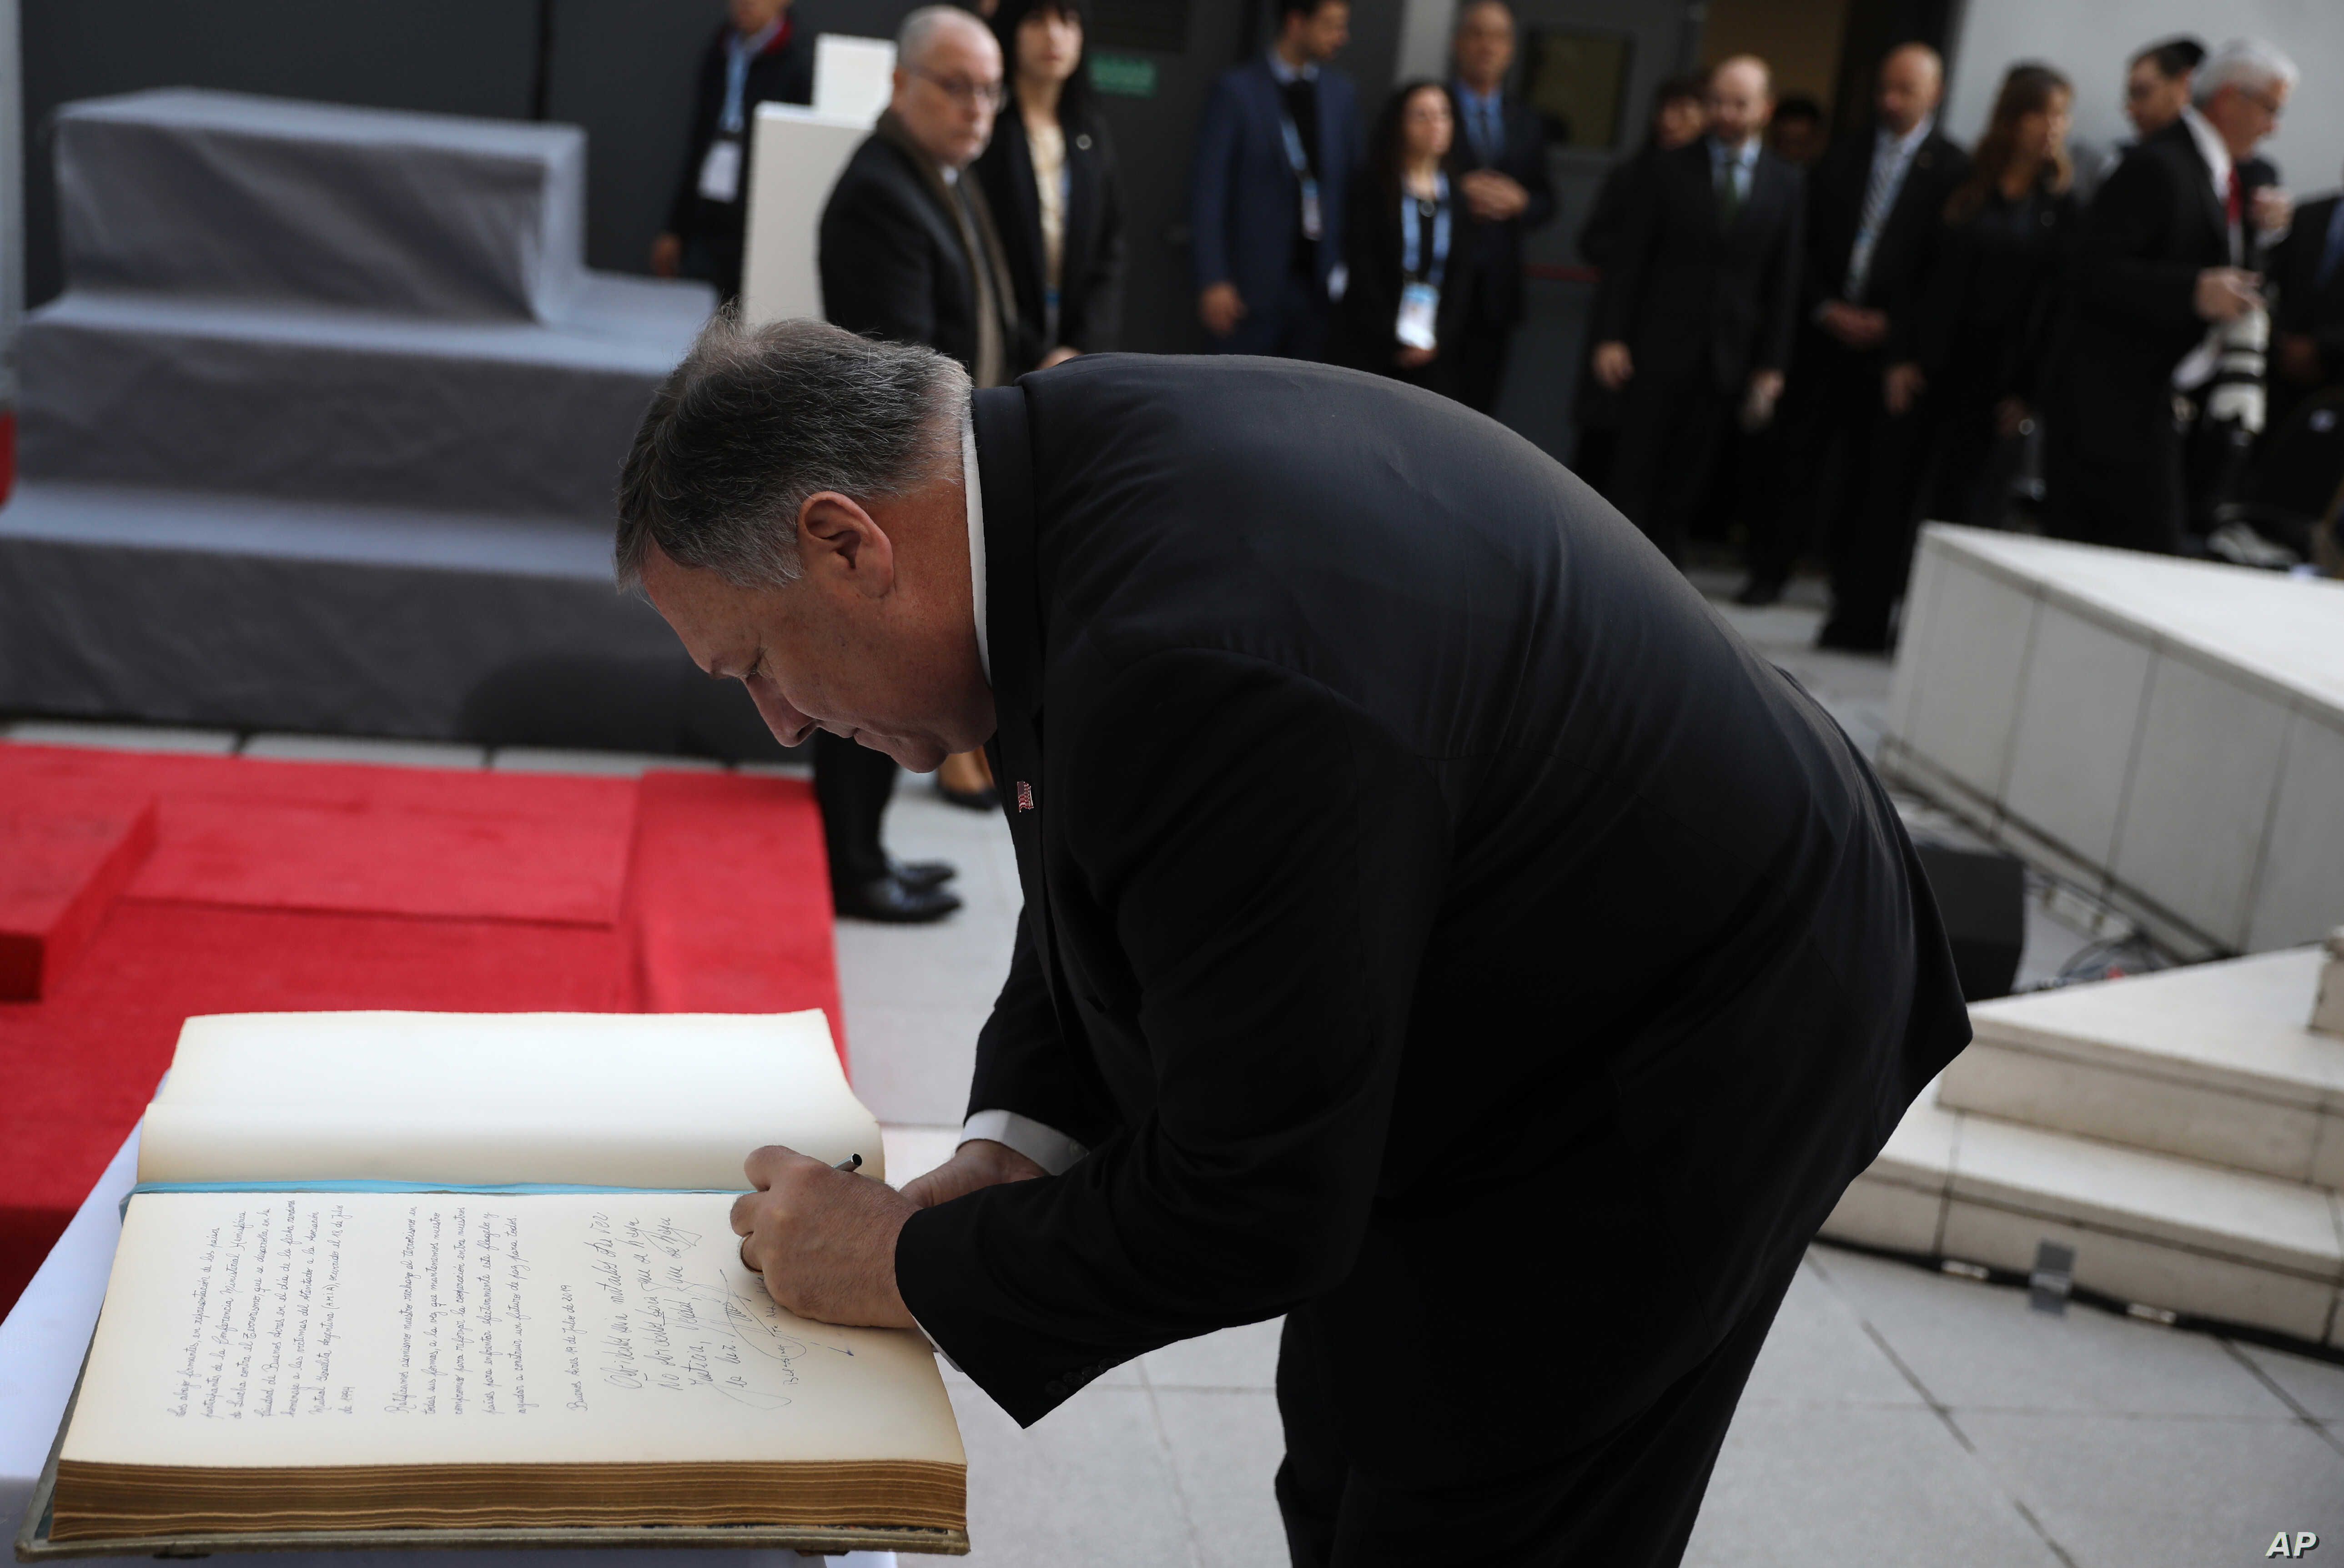 U.S. Secretary of State Mike Pompeo signs a guest book during a memorial service marking the death of 85 people who died in a 1994 bombing blamed on Hezbollah, in Buenos Aires, Argentina, Friday, July 19, 2019.  Argentine prosecutors blame Iranian…